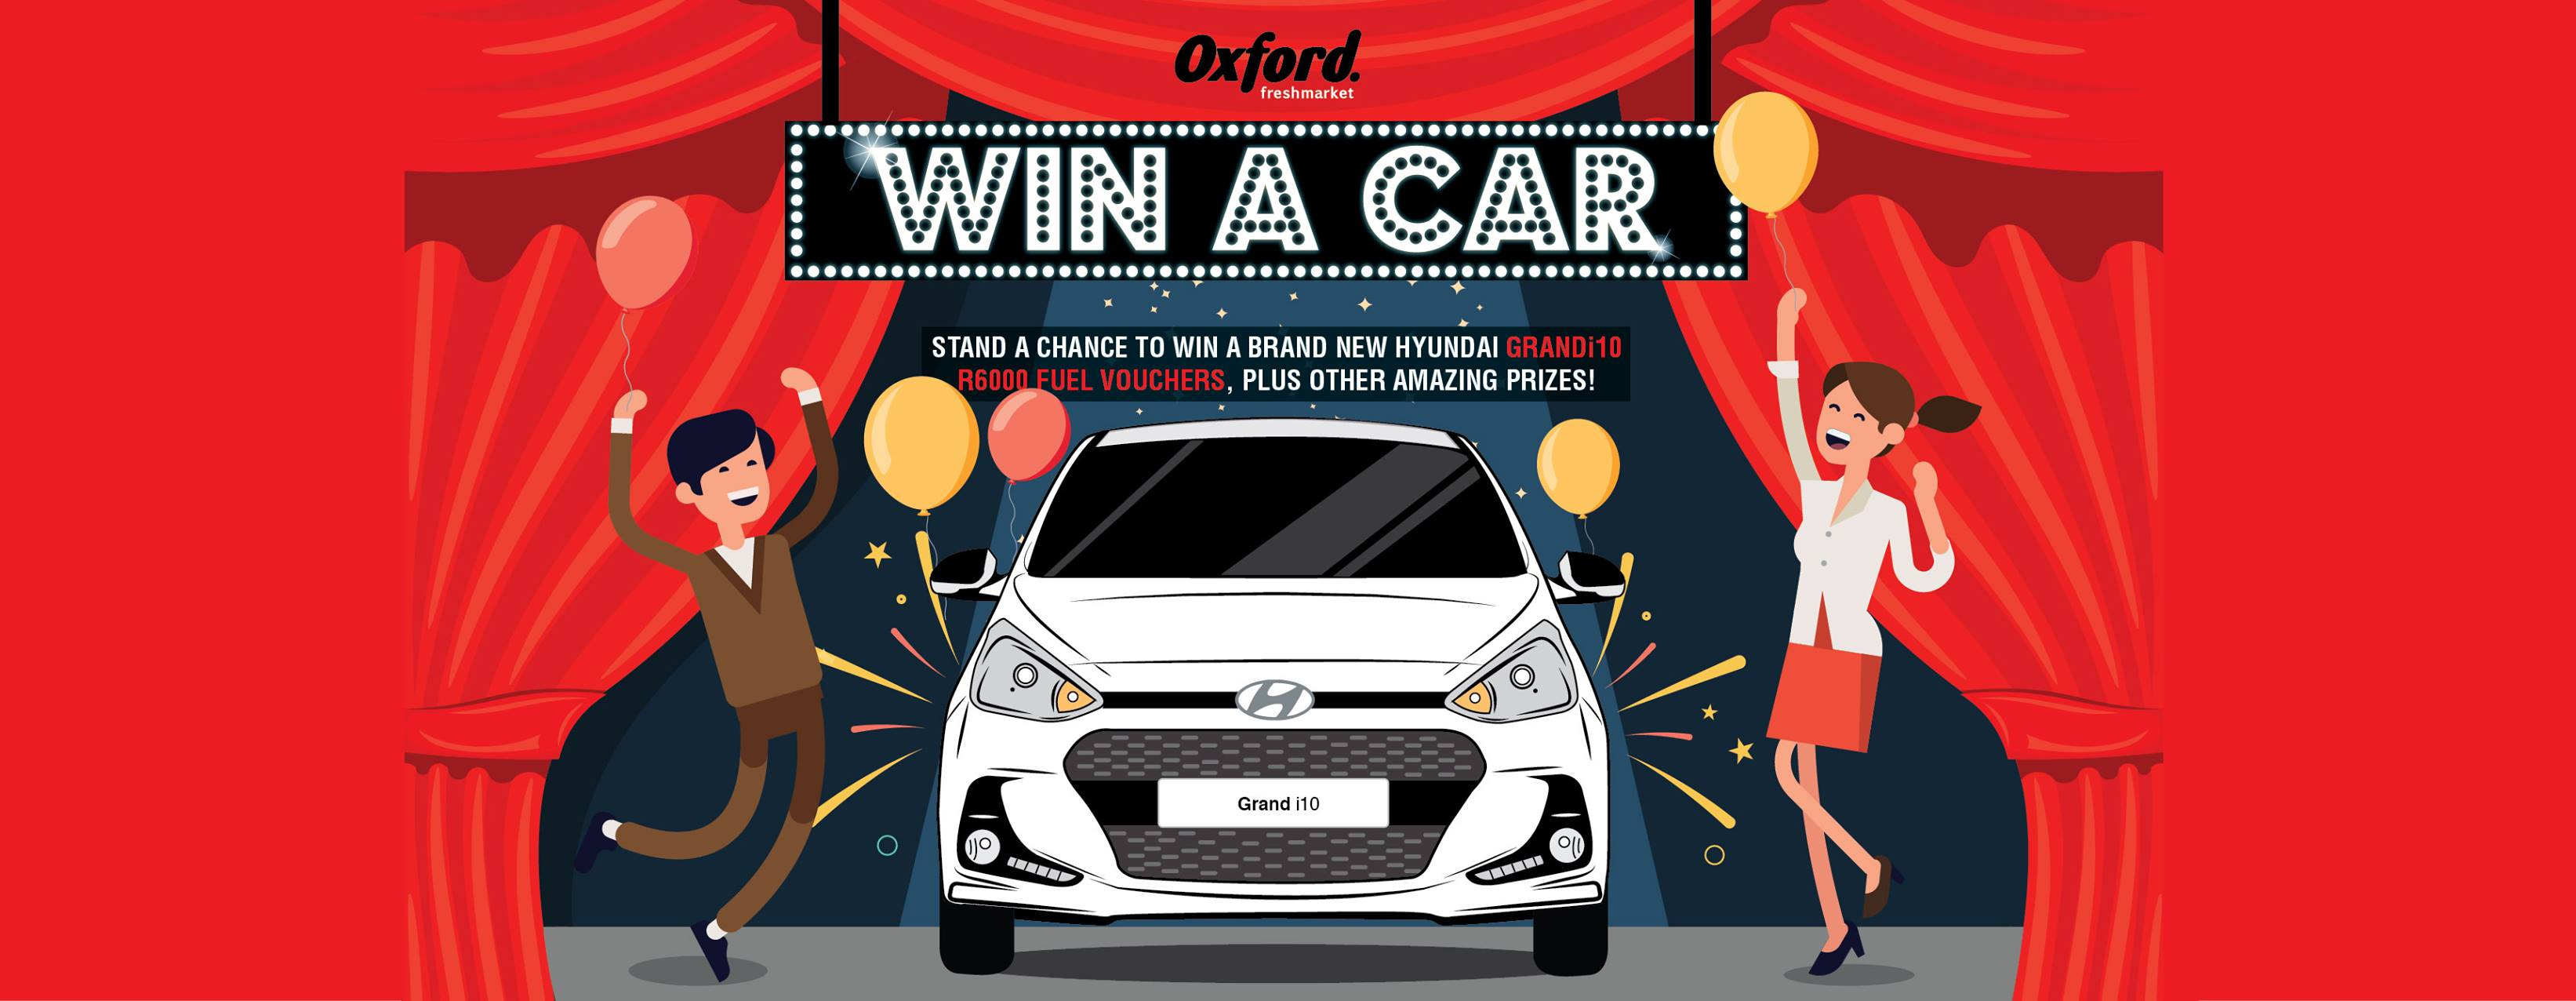 WIN A CAR with Oxford Freshmarket